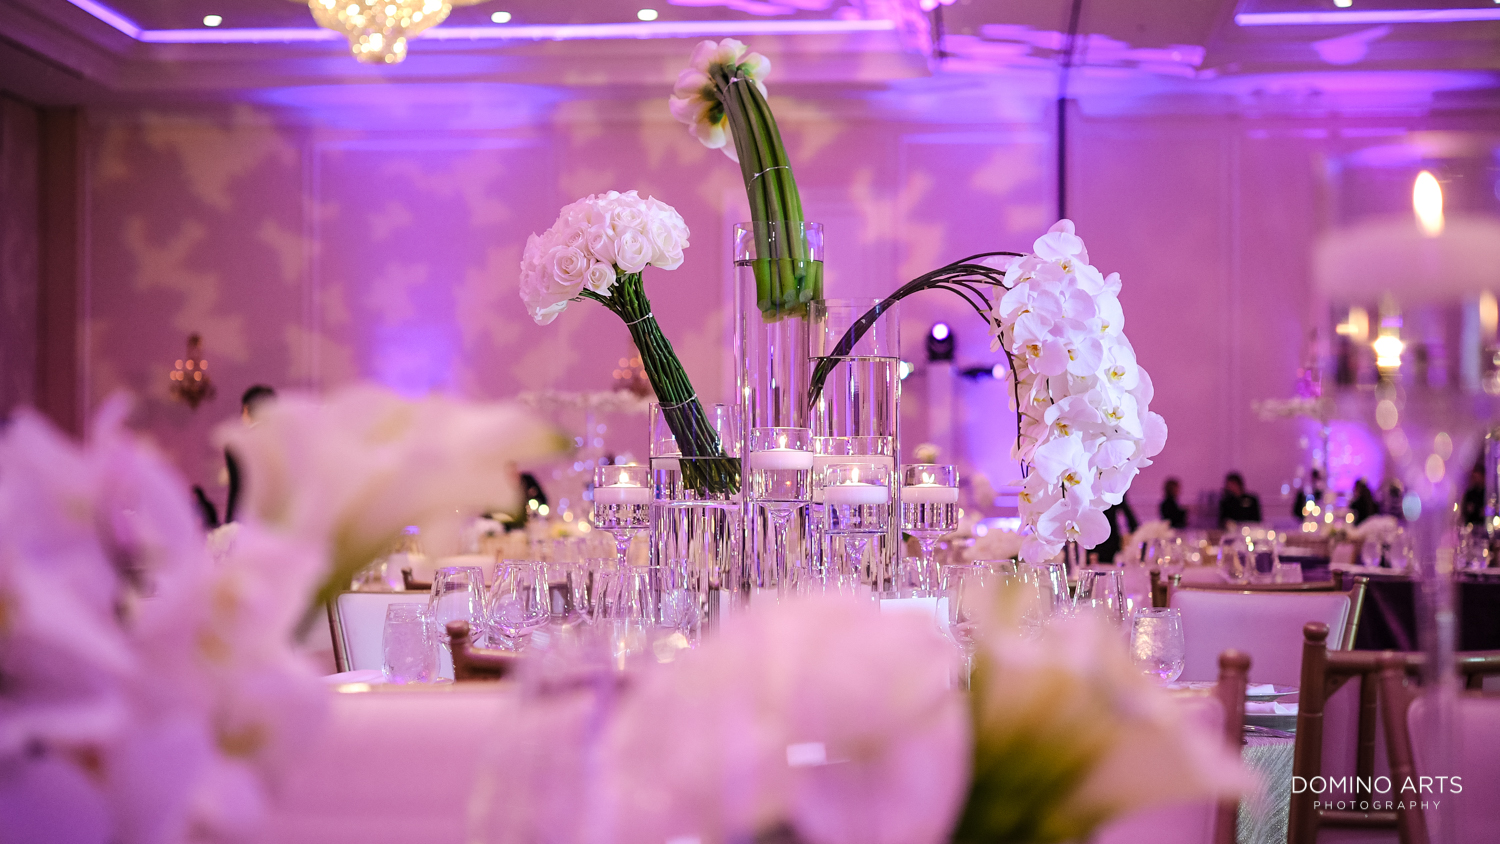 Luxury purple wedding decor at Modern Jewish wedding at Trump national Doral in South Florida